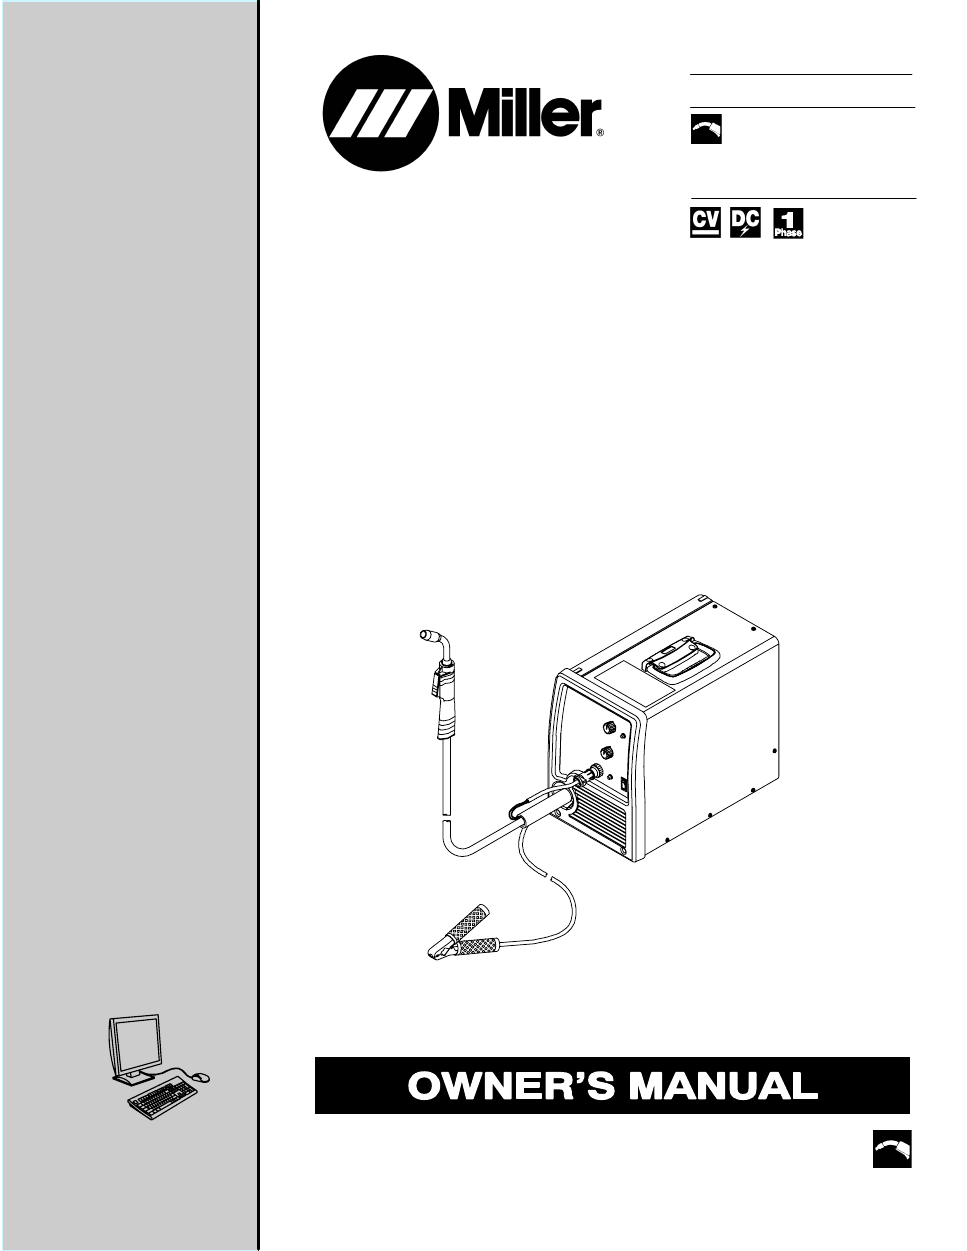 miller electric millermatic 180 user s manual free pdf download rh manualagent com Miller Plasma Cutter Miller Plasma 701